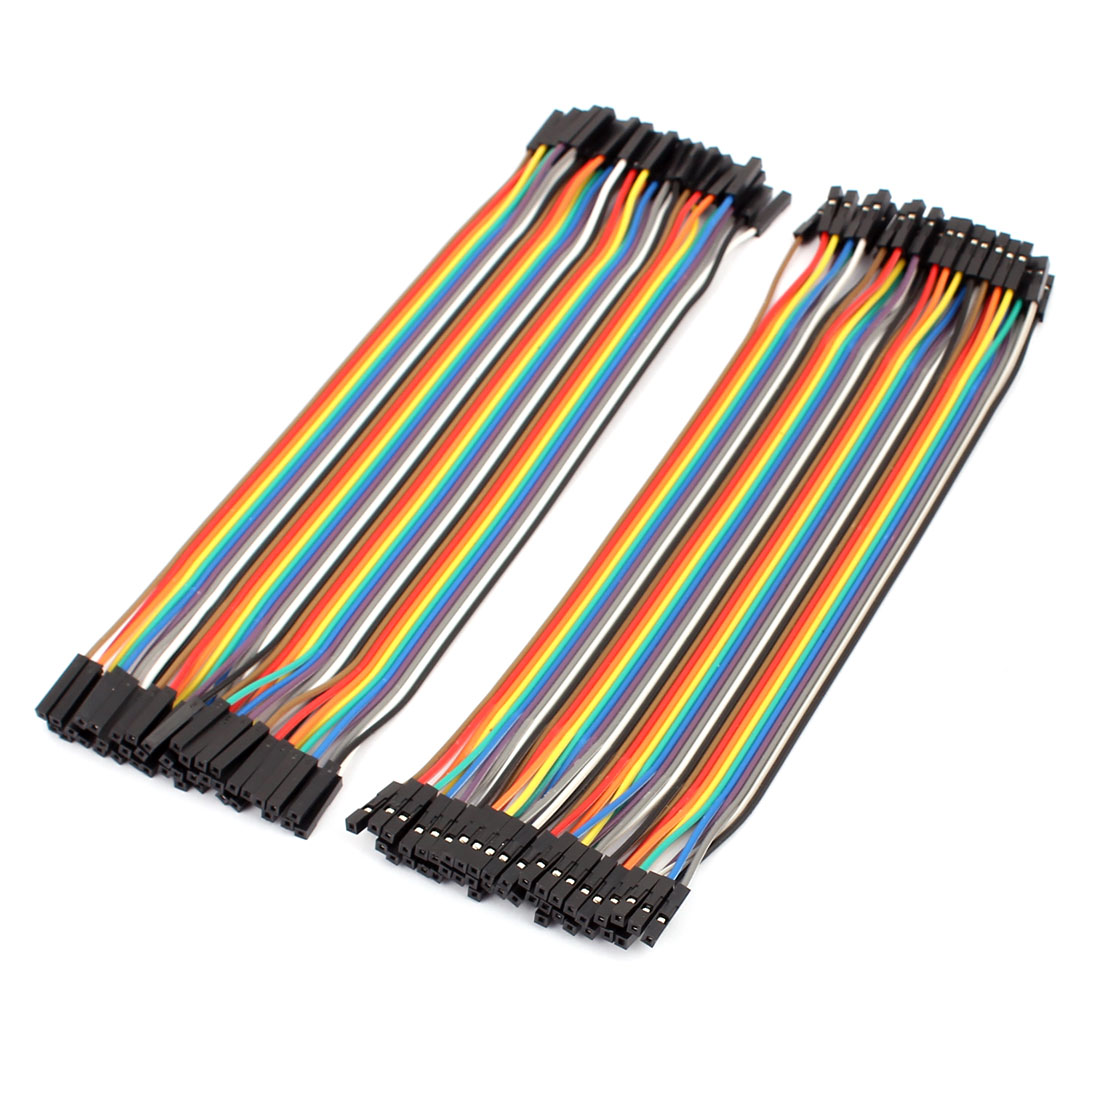 2PCS 2.0mm to 2.54mm Female Connector 40P Breadboard Double Head Jumper Wire Cable 20cm Length